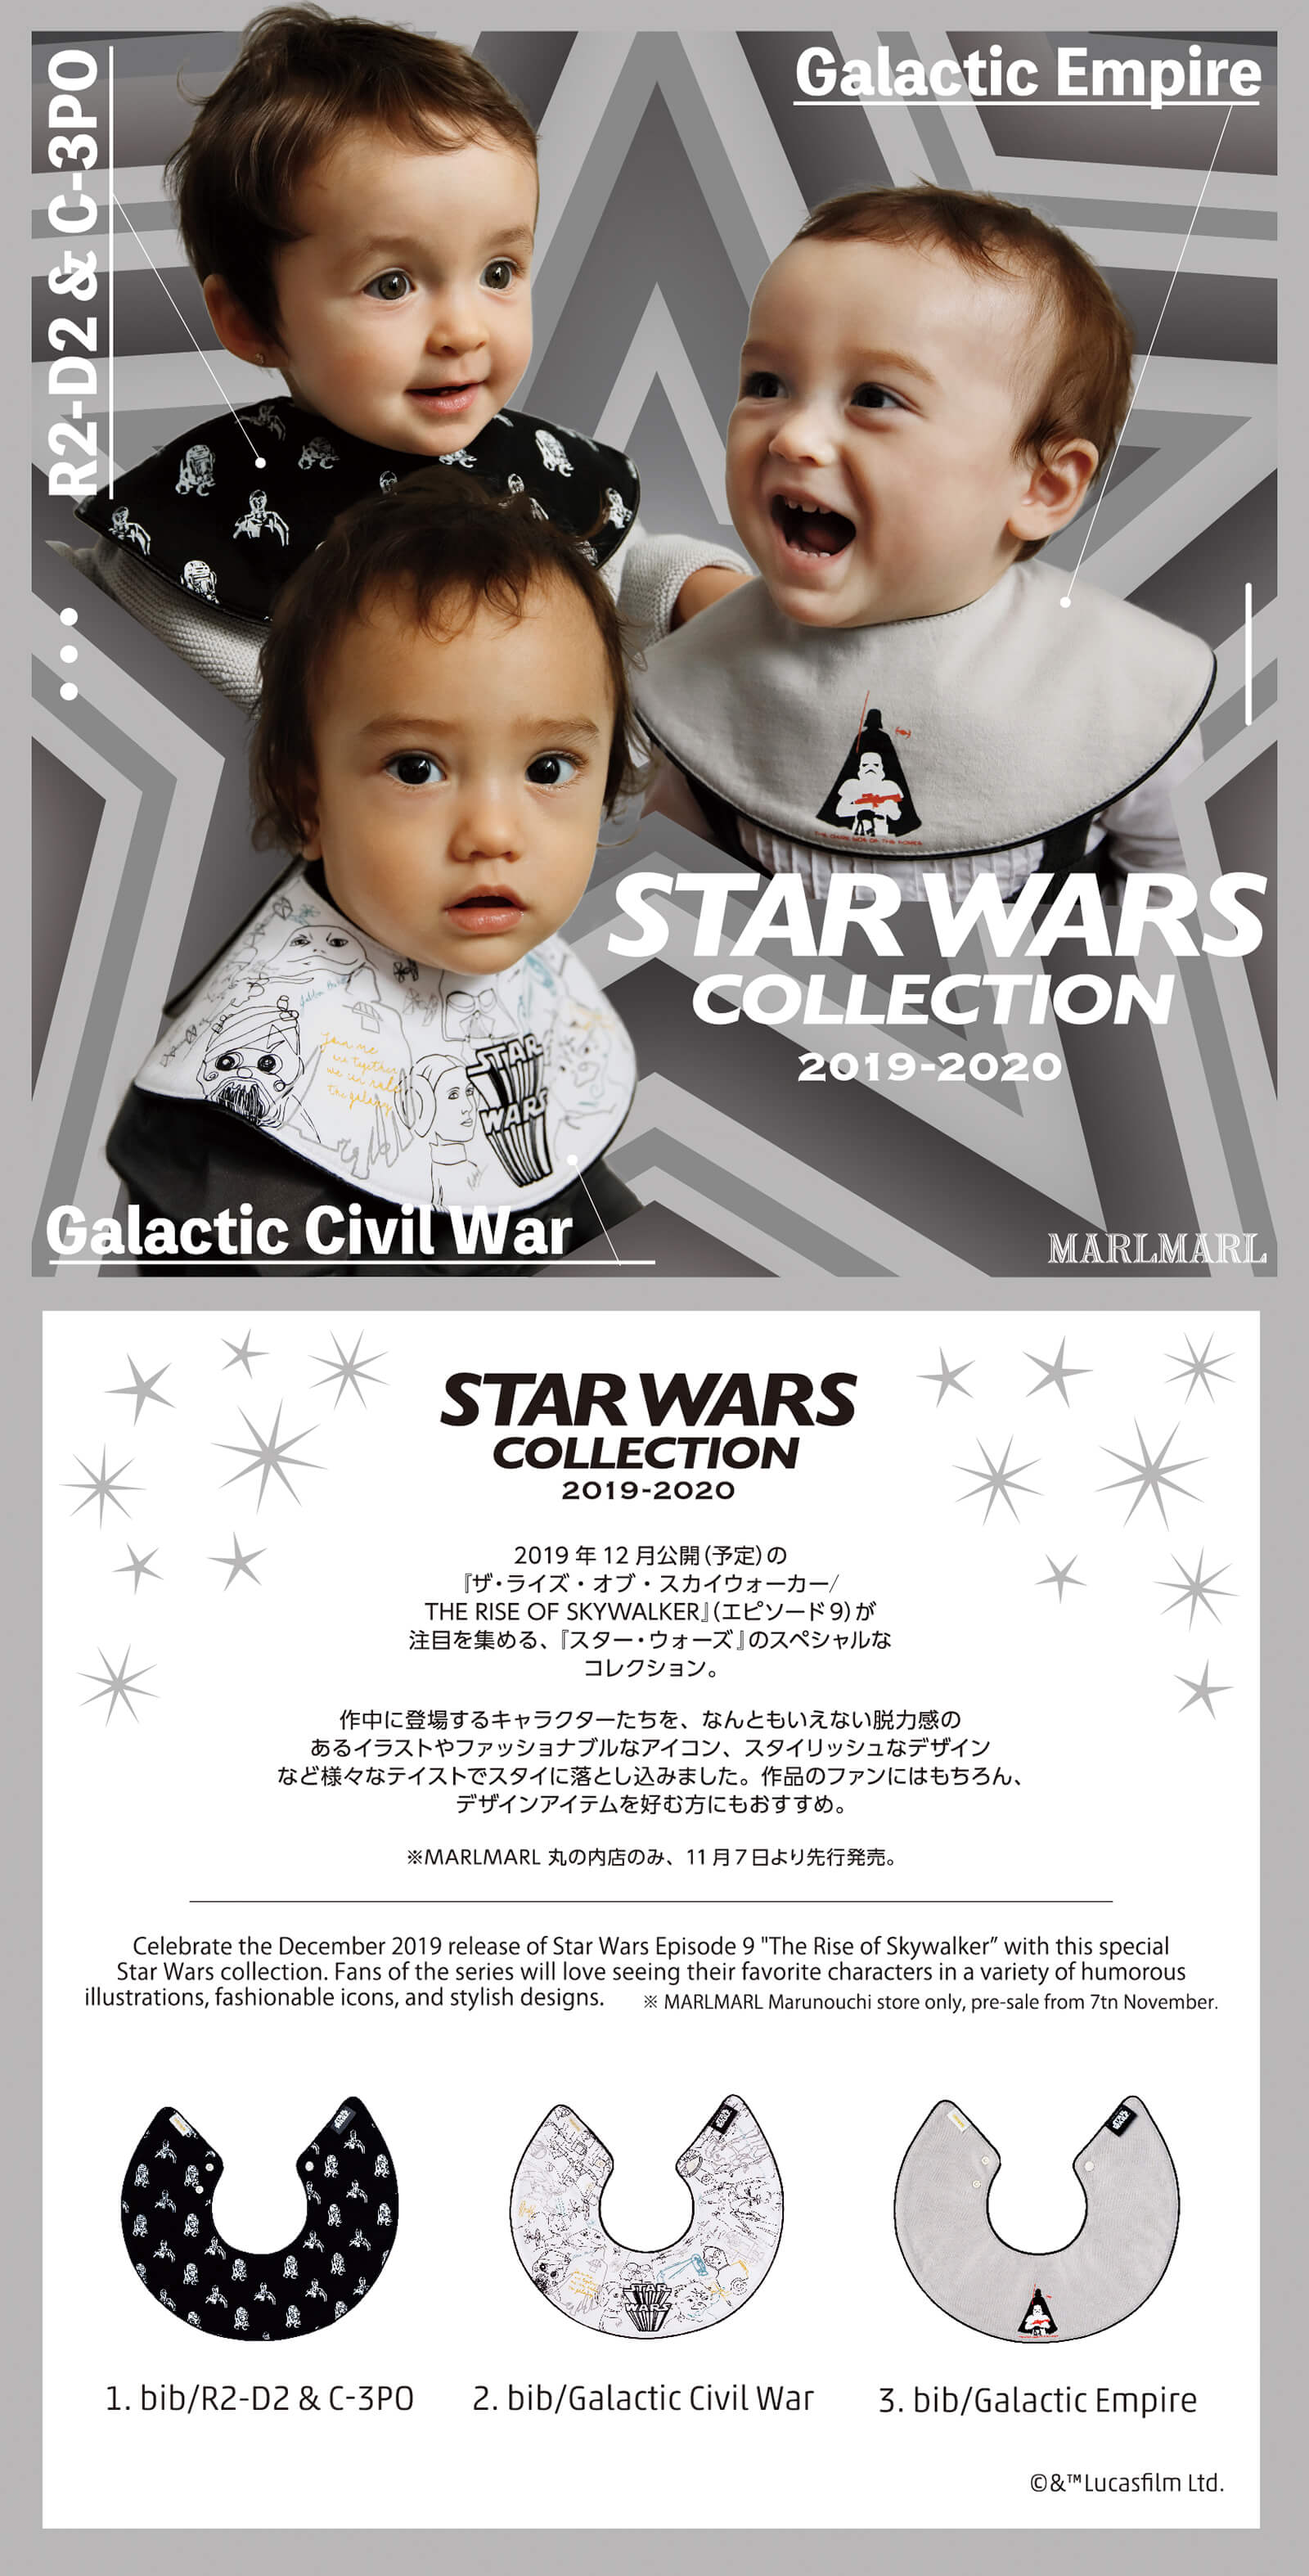 2019-2020 STAR WARS COLLECTION|出産祝い・ギフトならMARLMARLのスタイ